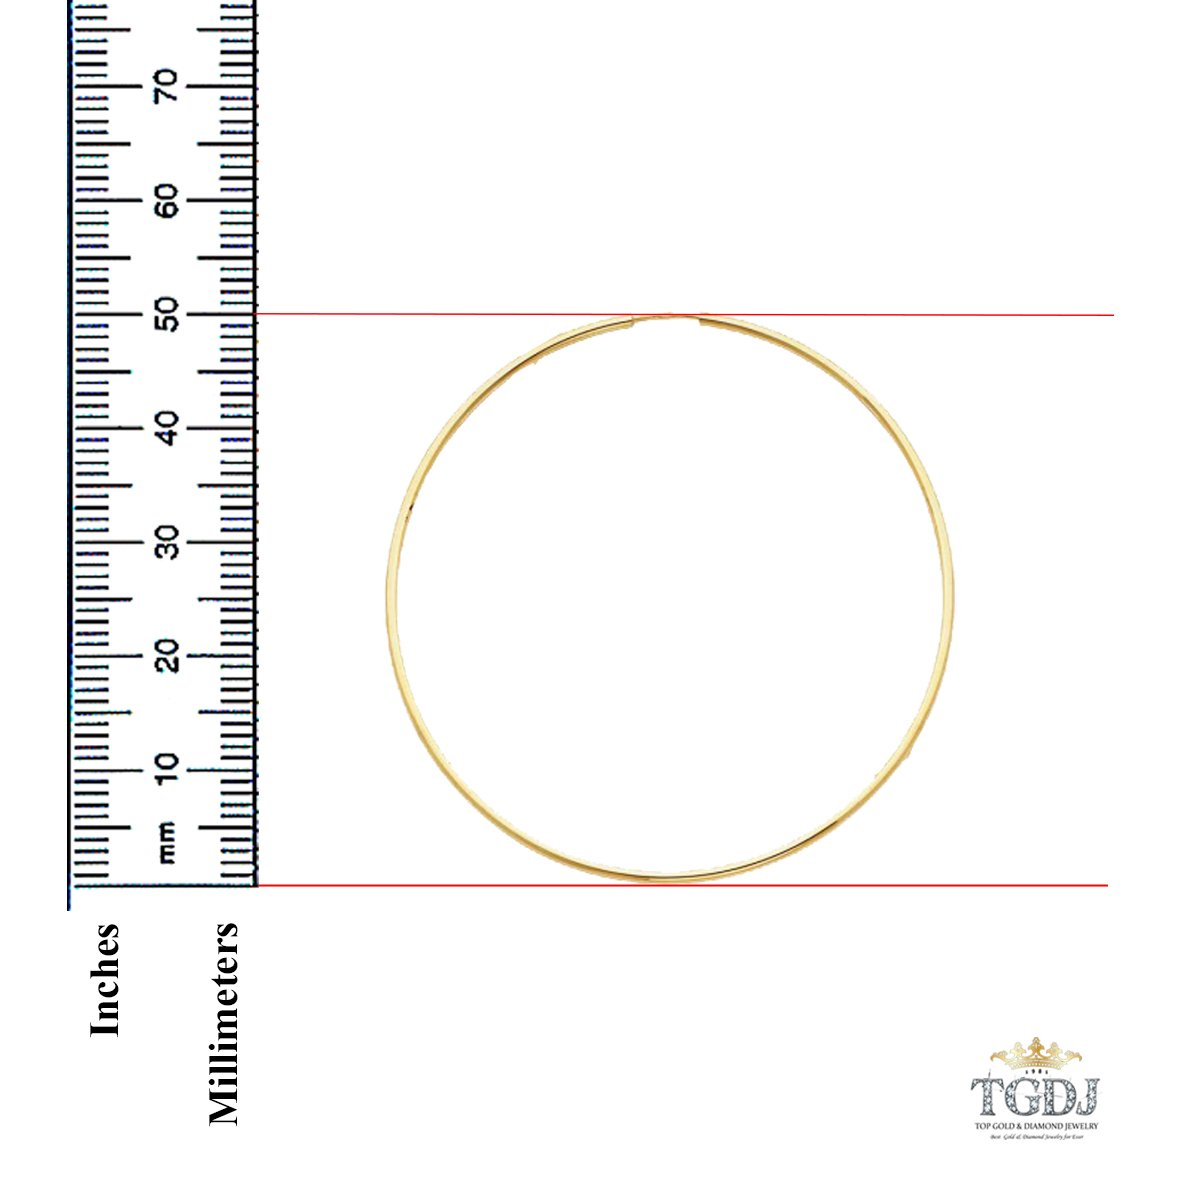 50 x 50 mm 14k Yellow Gold 1.5mm Thickness Endless Hoop Earrings